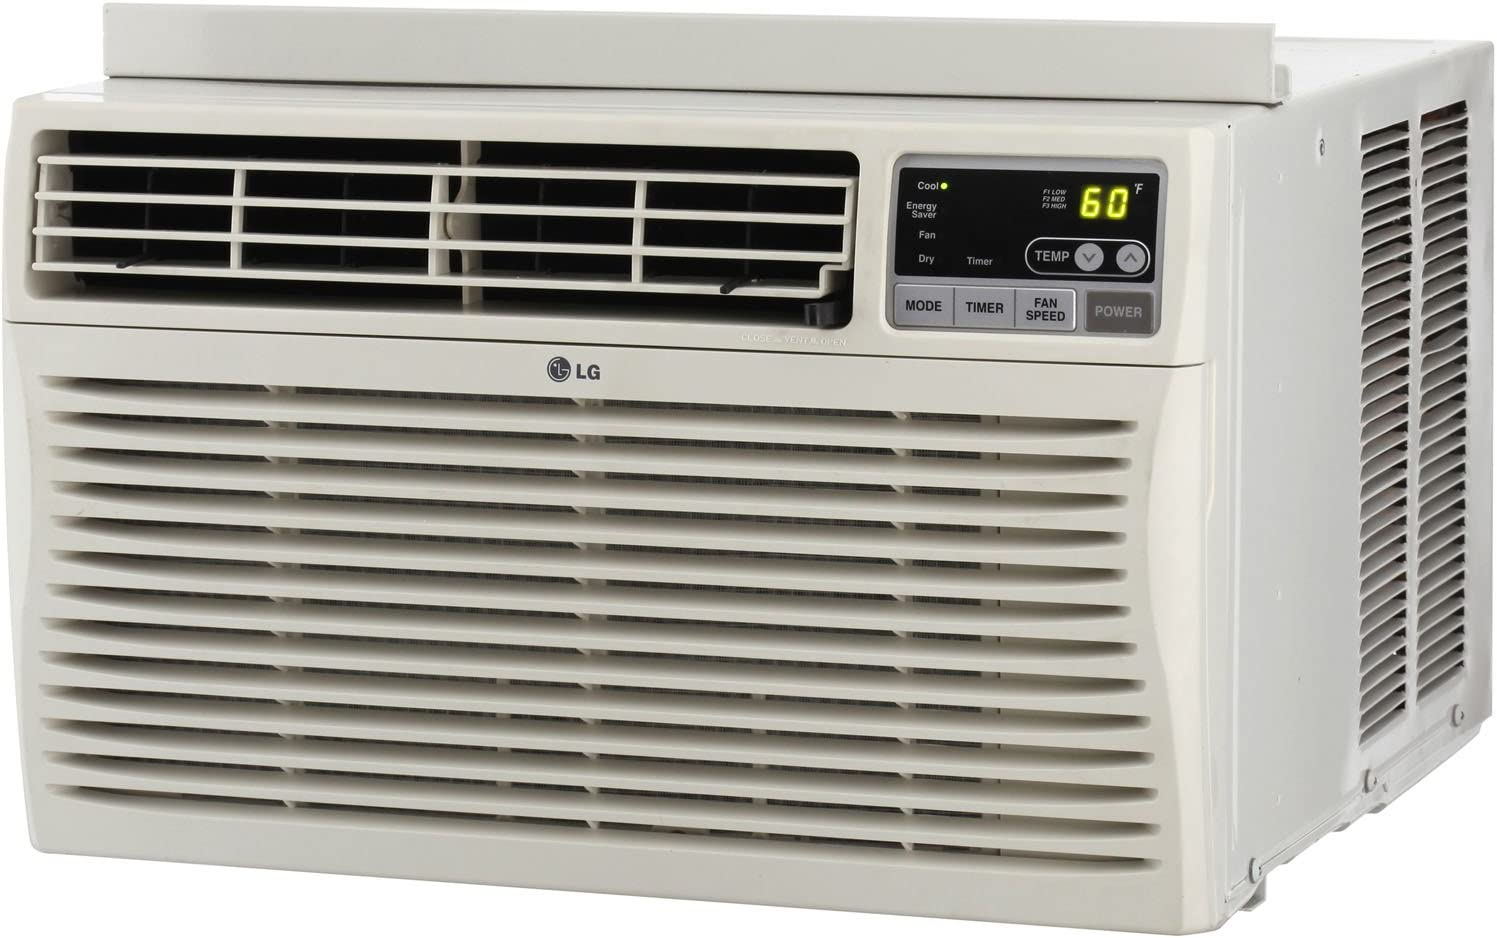 LG Electronics lw1512ers 15.000 BTU 115-volt Window-Mounted Aire Acondicionado con Mando a Distancia: Amazon.es: Hogar